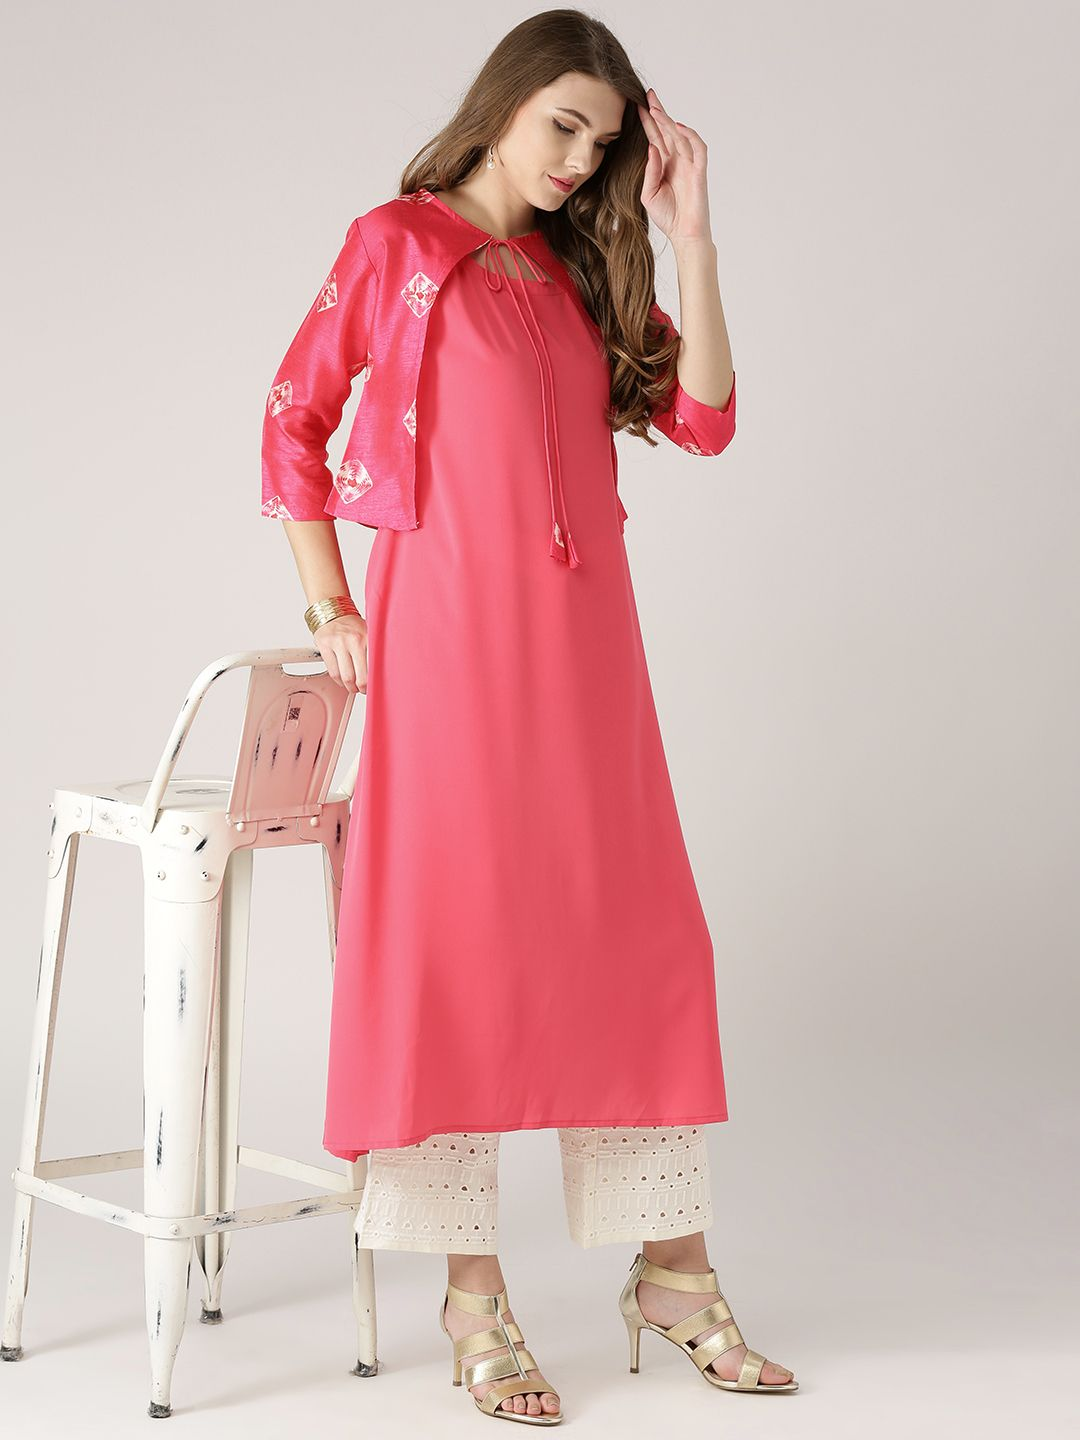 2400a82fc7 Libas Pink Solid A-Line Kurta with Ethnic Jacket | Women's Kurti in ...